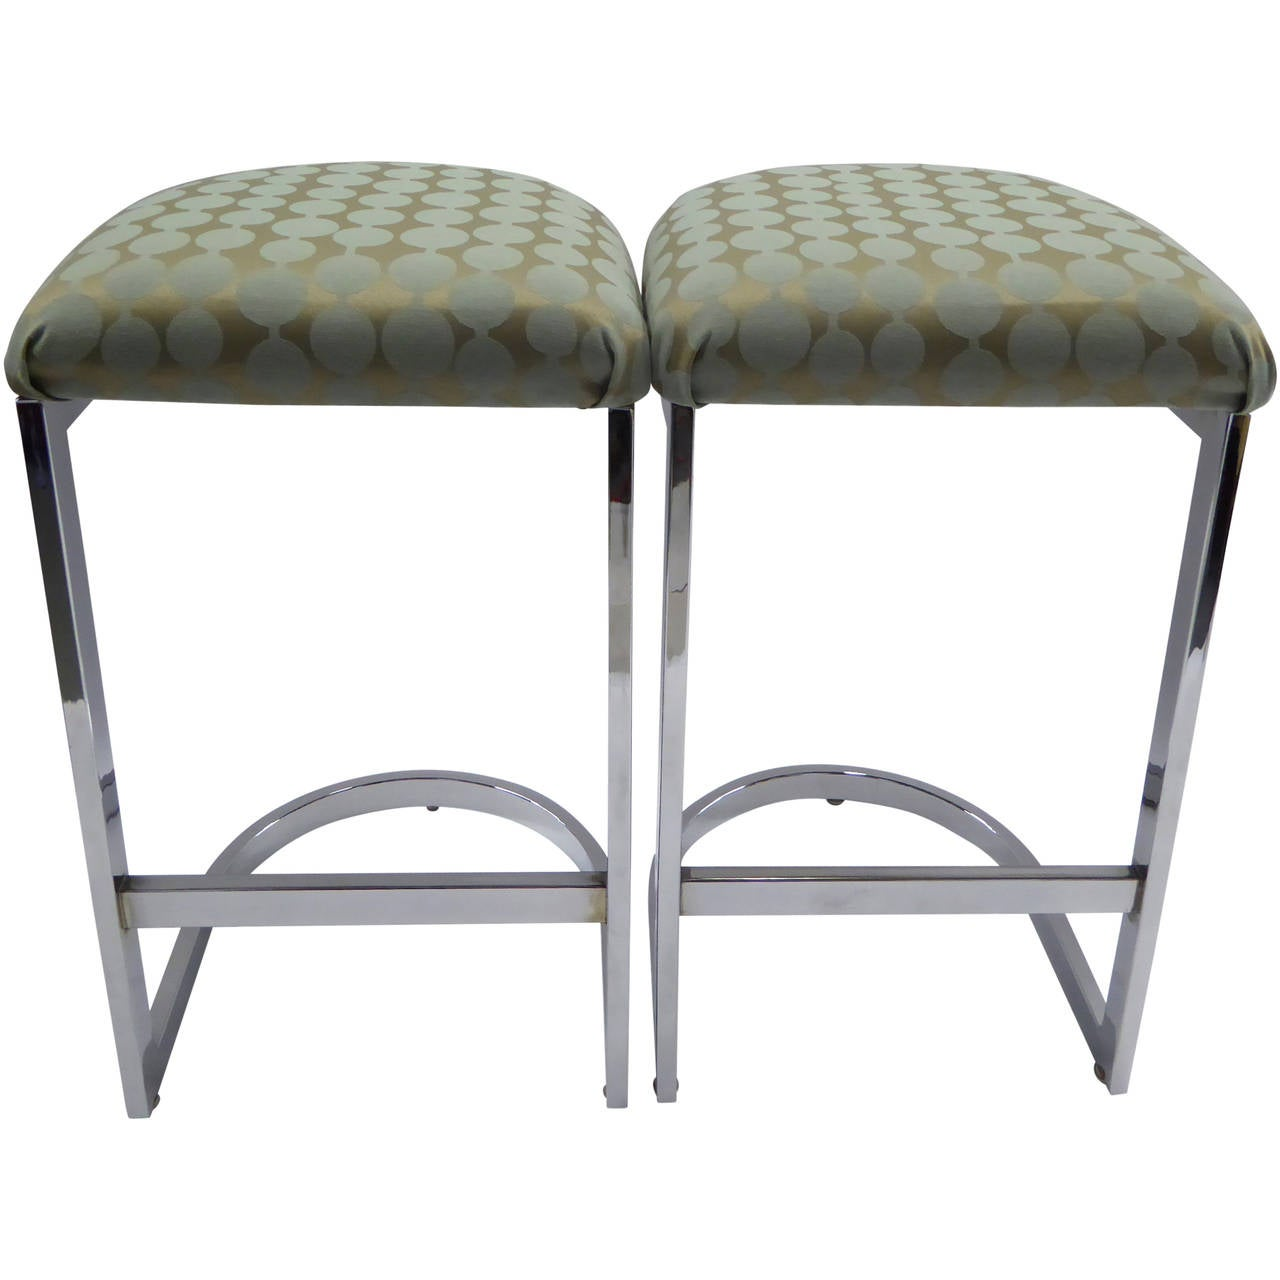 Pair Of Milo Baughman Chrome D Form Barstools At 1stdibs